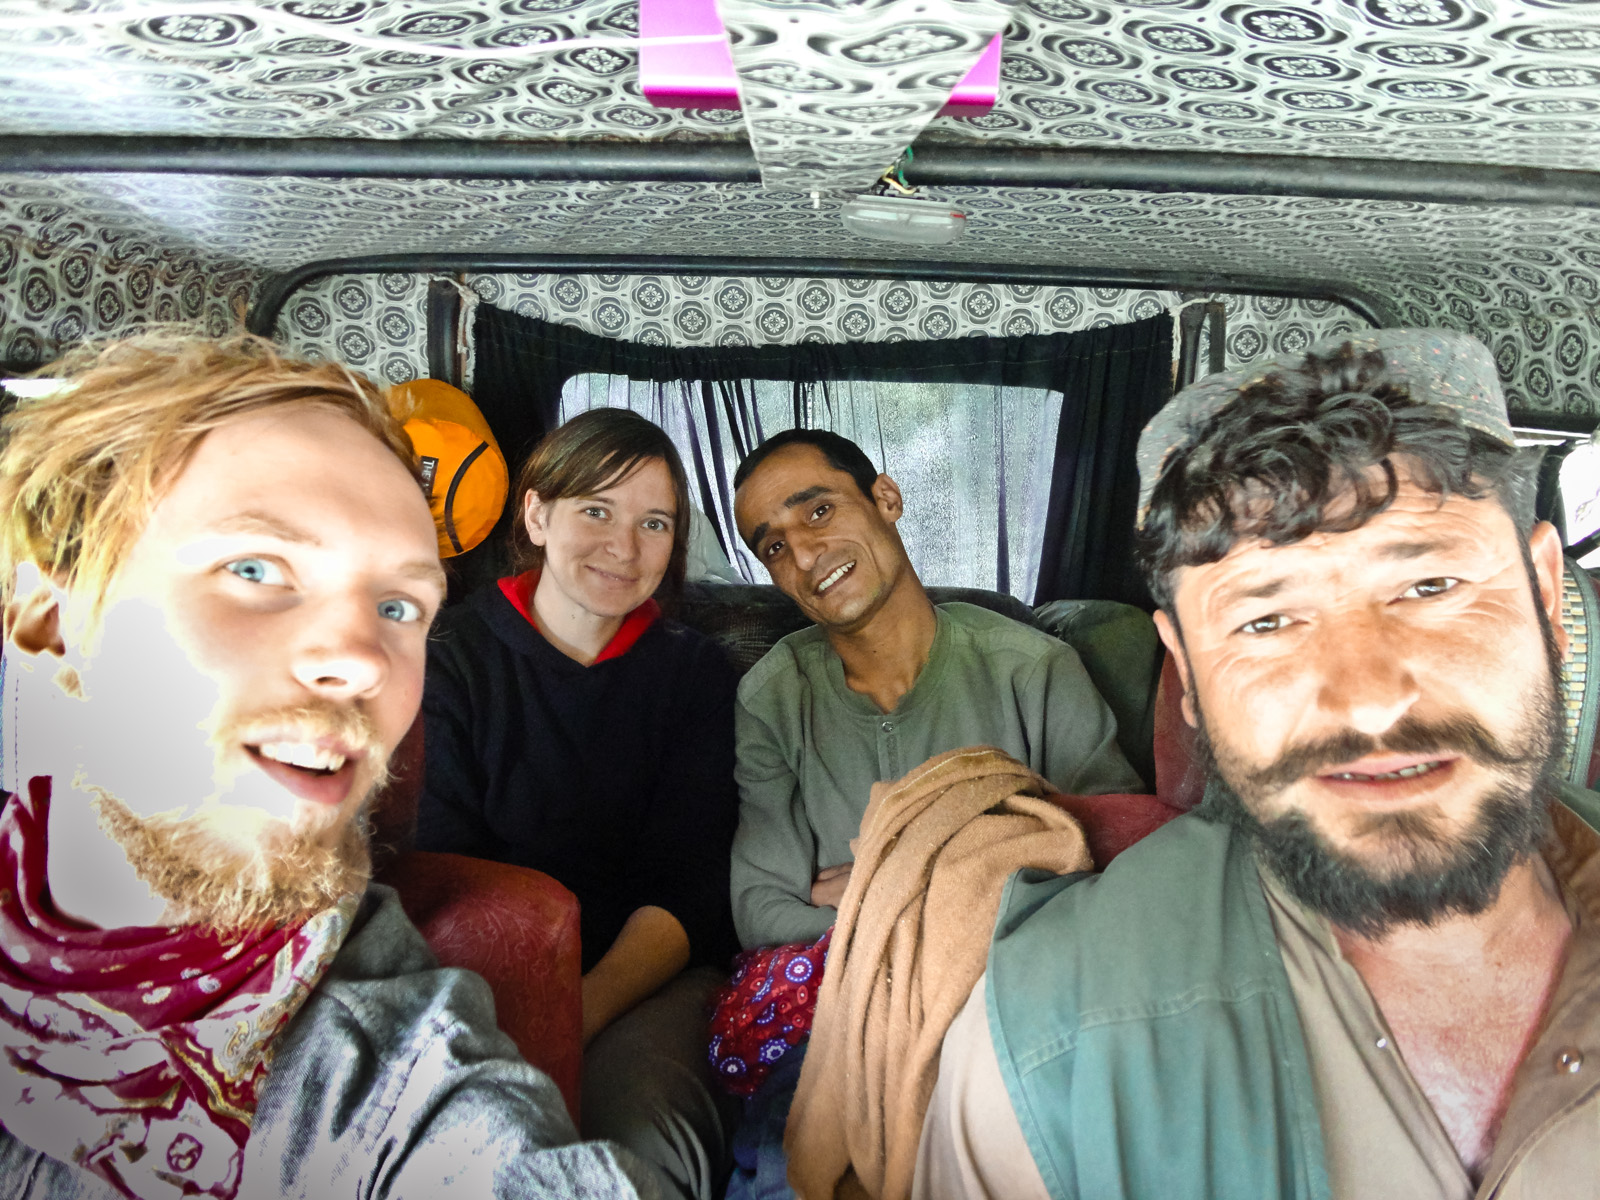 All in the Jeep, Pakistan